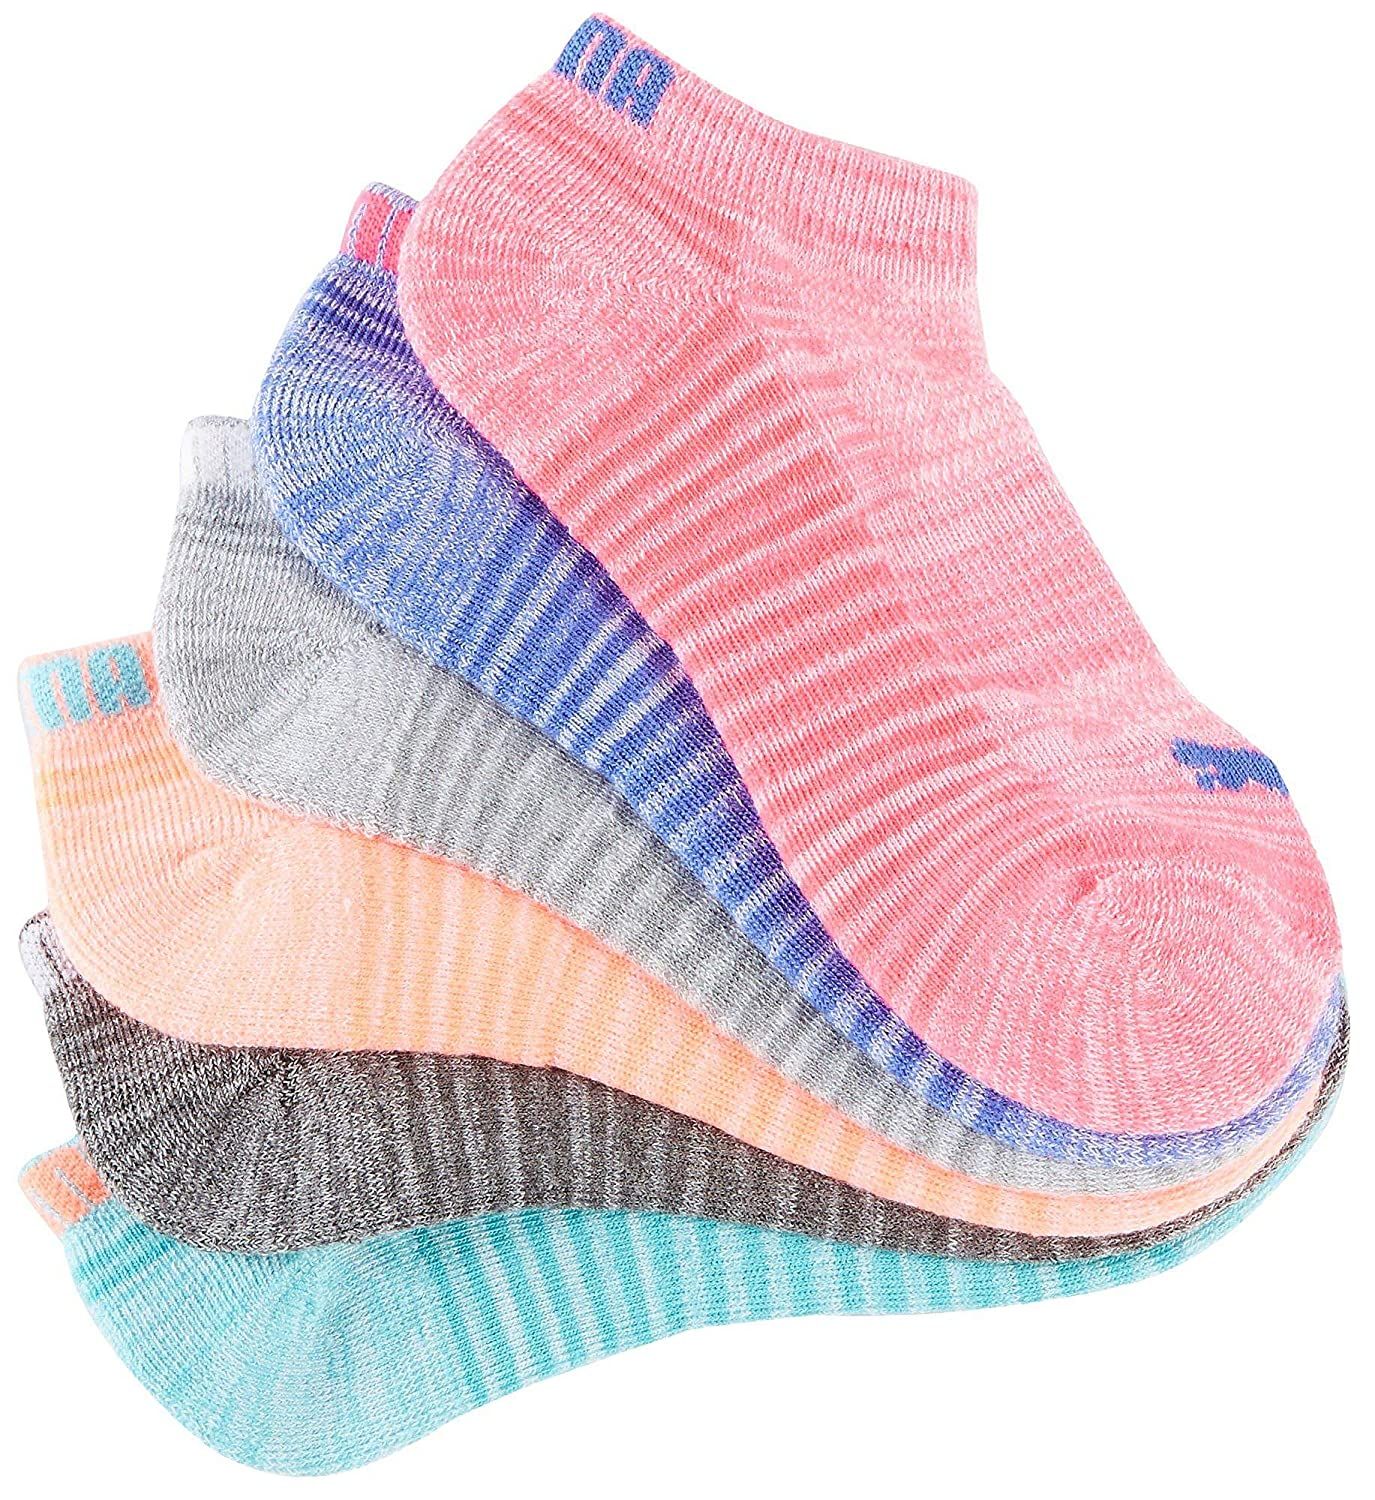 9750e2c9364 PUMA Women s 6 Pack Low Cut Socks at Amazon Women s Clothing store